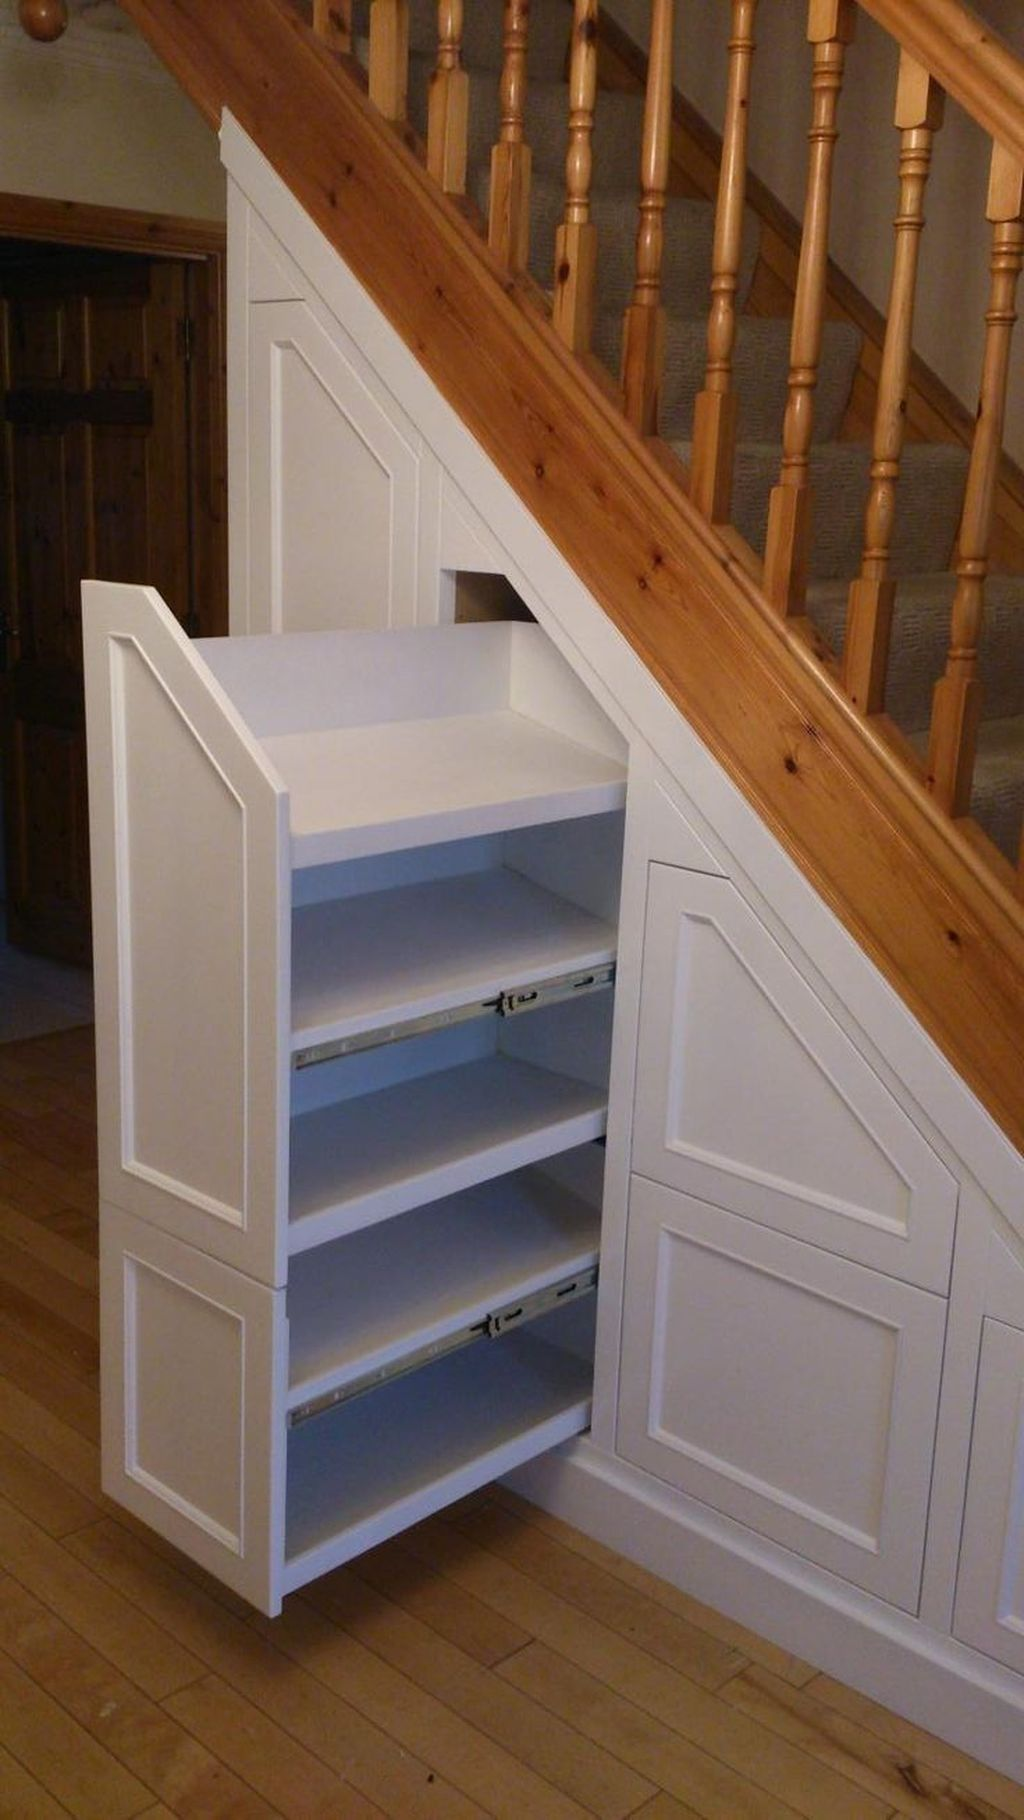 20+ Brilliant Storage Ideas For Under Stairs That Will Amaze You